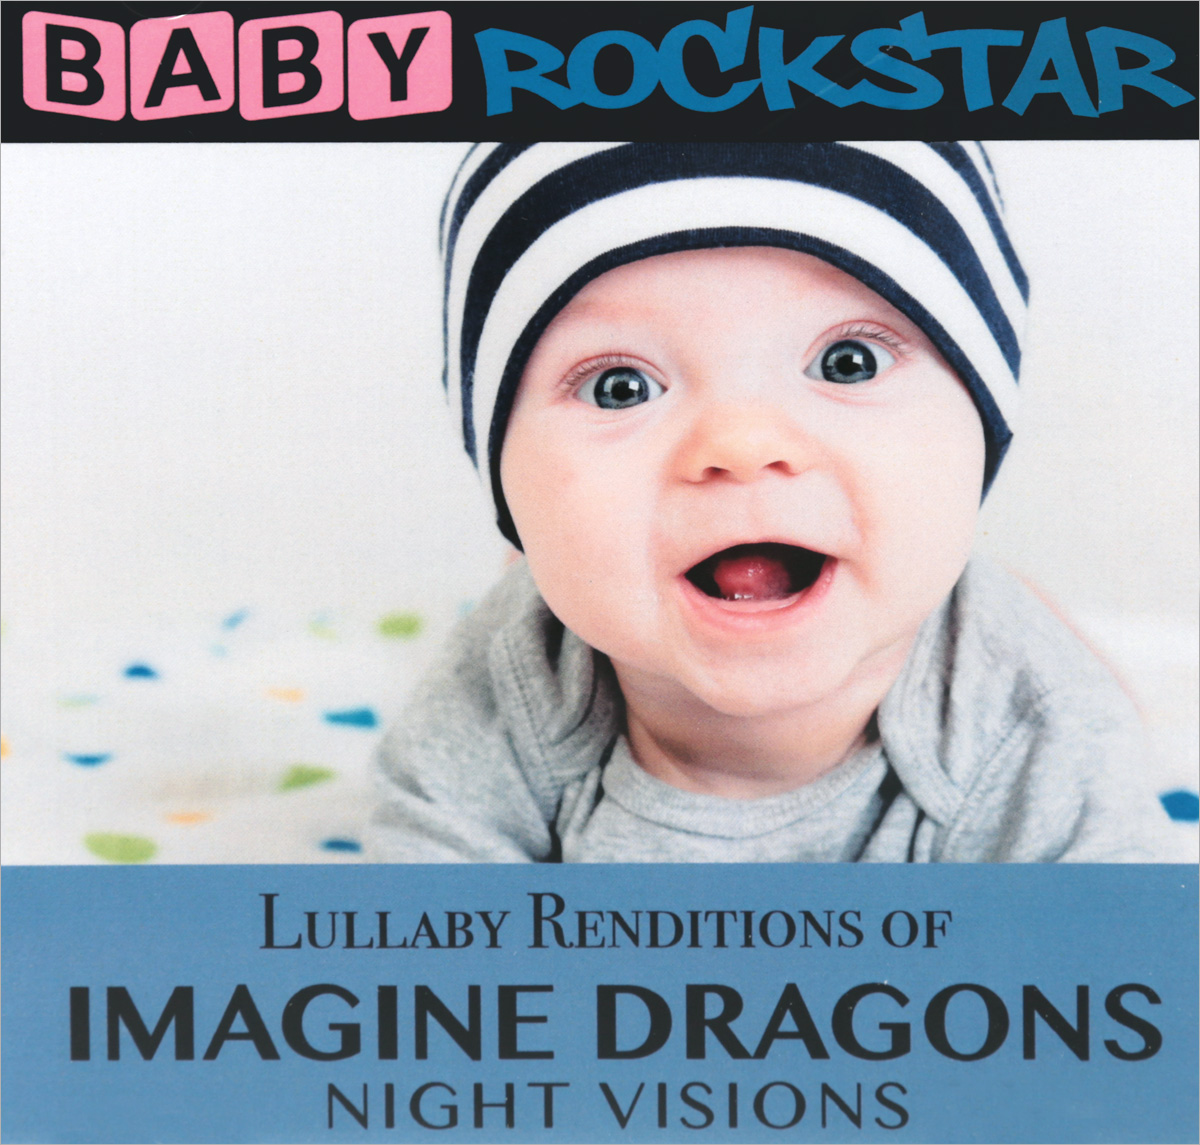 The Imagine Dragons Baby Rockstar. Lullaby Renditions Of Imagine Dragons. Night Visions imagine dragons imagine dragons night visions